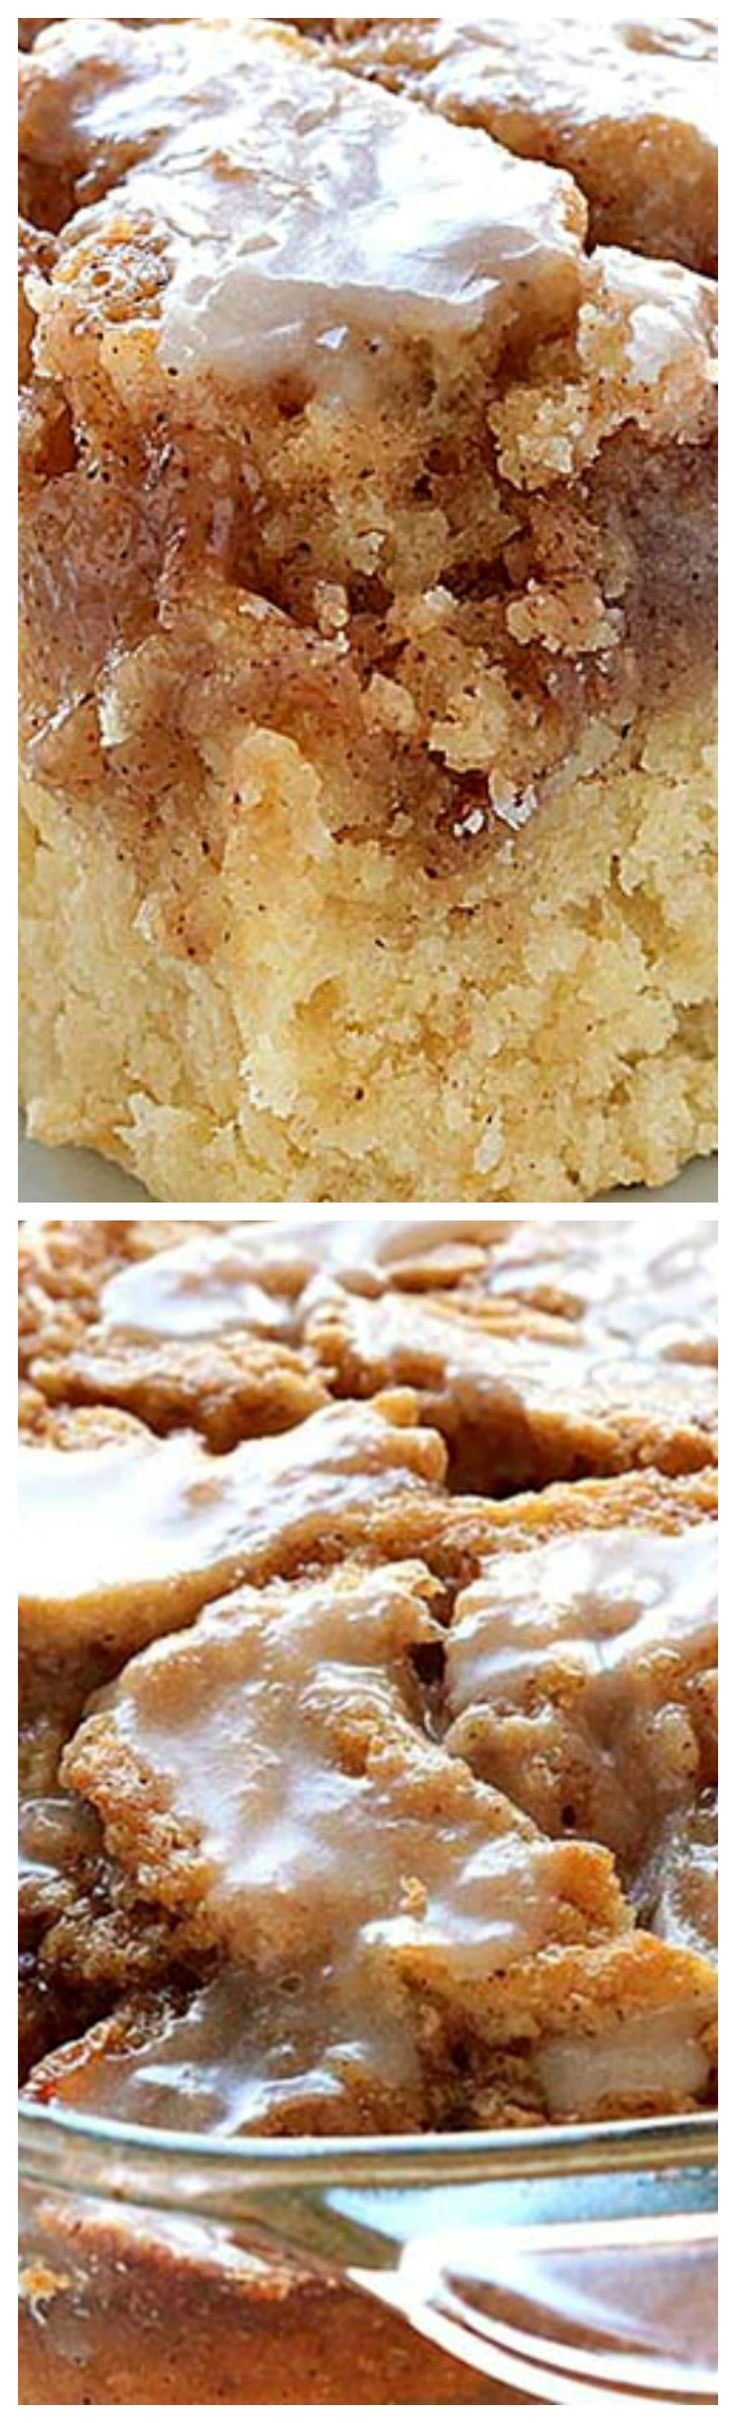 Easy Cinnamon Roll Coffee Cake ~ Simple and quick recipe for delicious, homemade coffee cake from scratch, with ingredients that you already have in pantry.